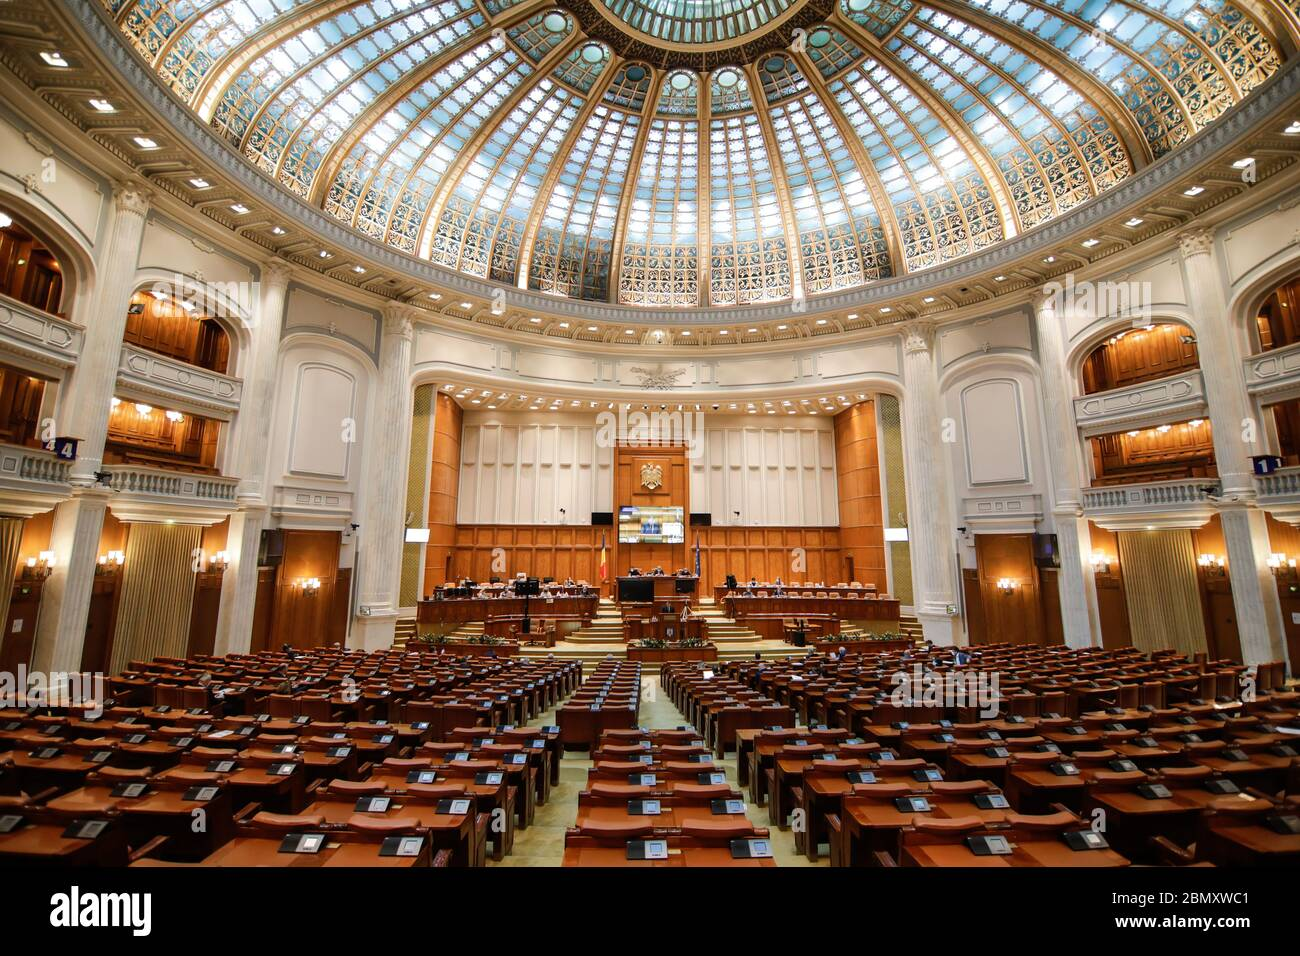 Bucharest, Romania - May 11, 2020: Romanian members of parliament attend a Parliament's session in the Chamber of Deputies hall of the Palace of Parli Stock Photo